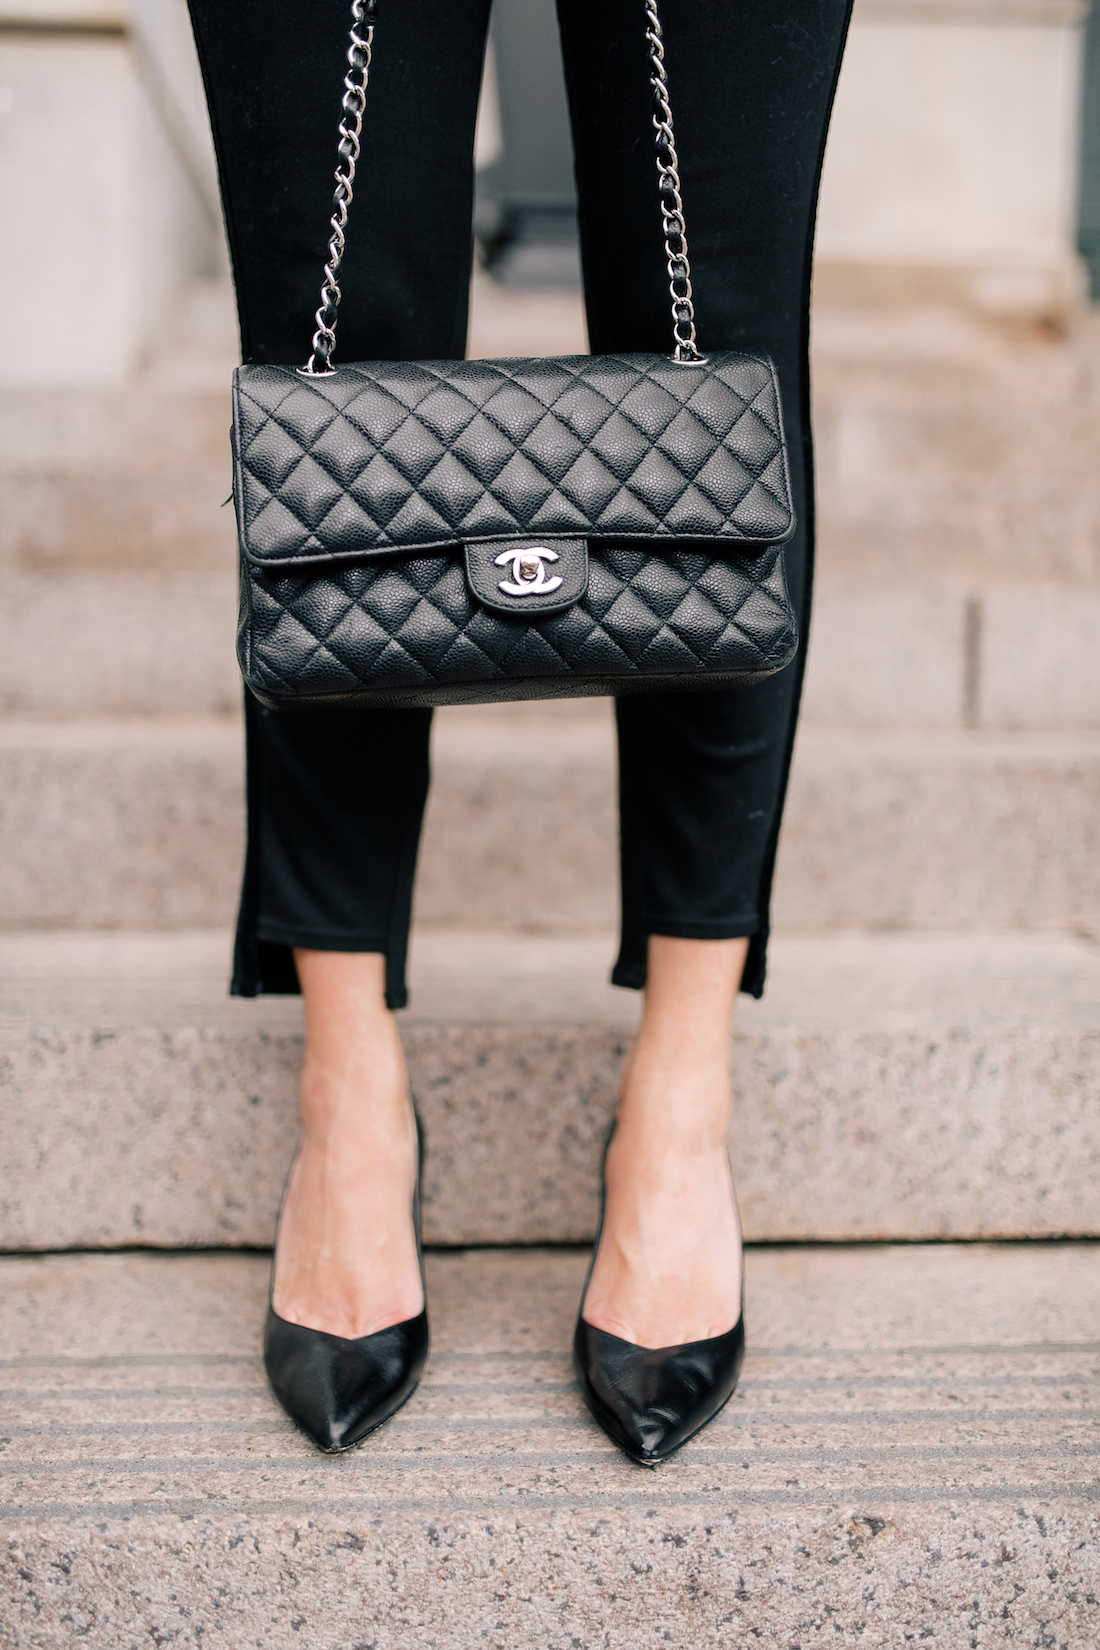 Chanel bag and black pumps